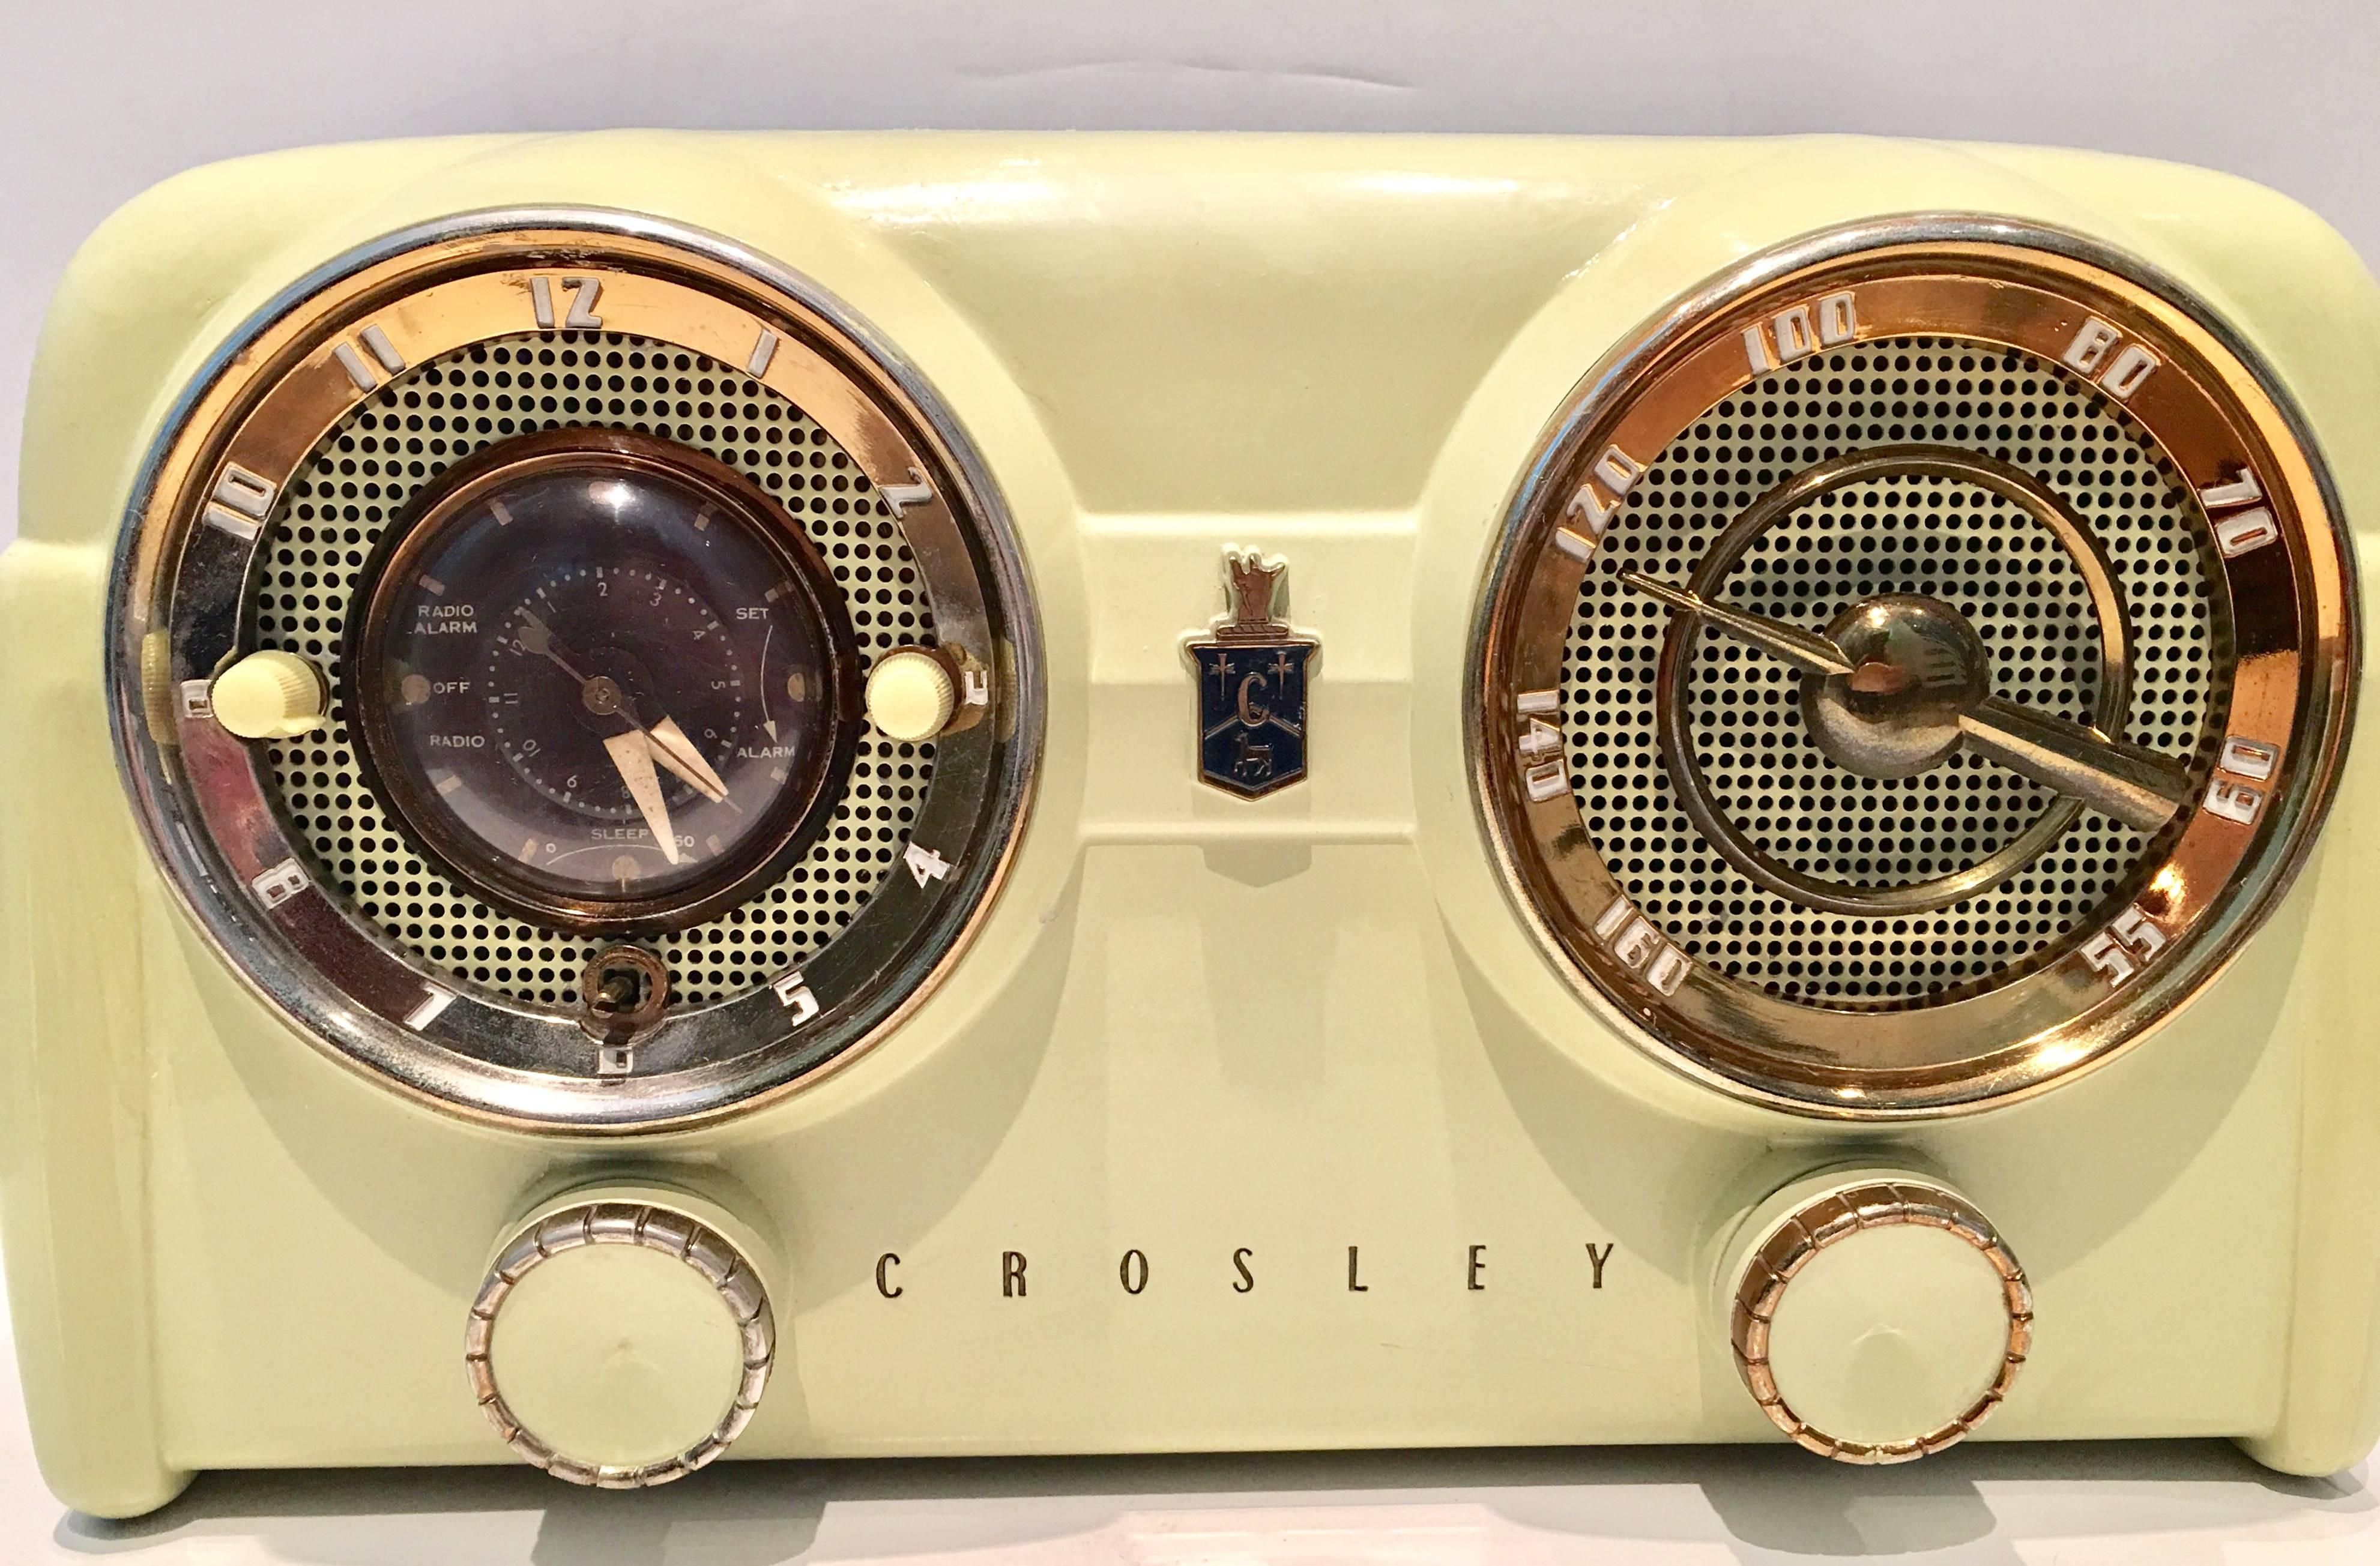 Crosley Radio 1950s Art Deco Crosely Bakelite Tube